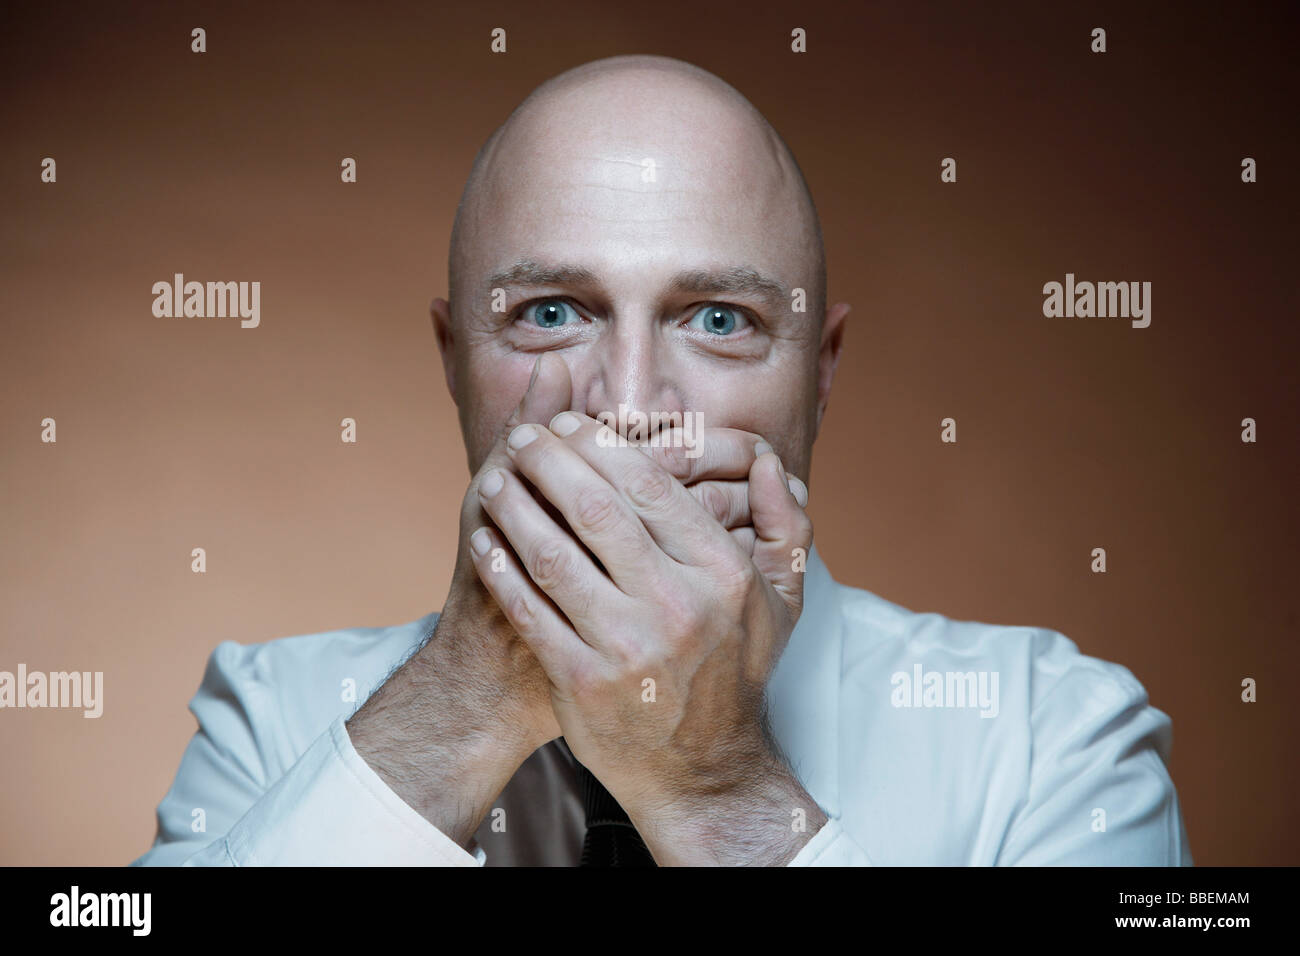 Portrait of Man Covering Mouth with Hands Stock Photo